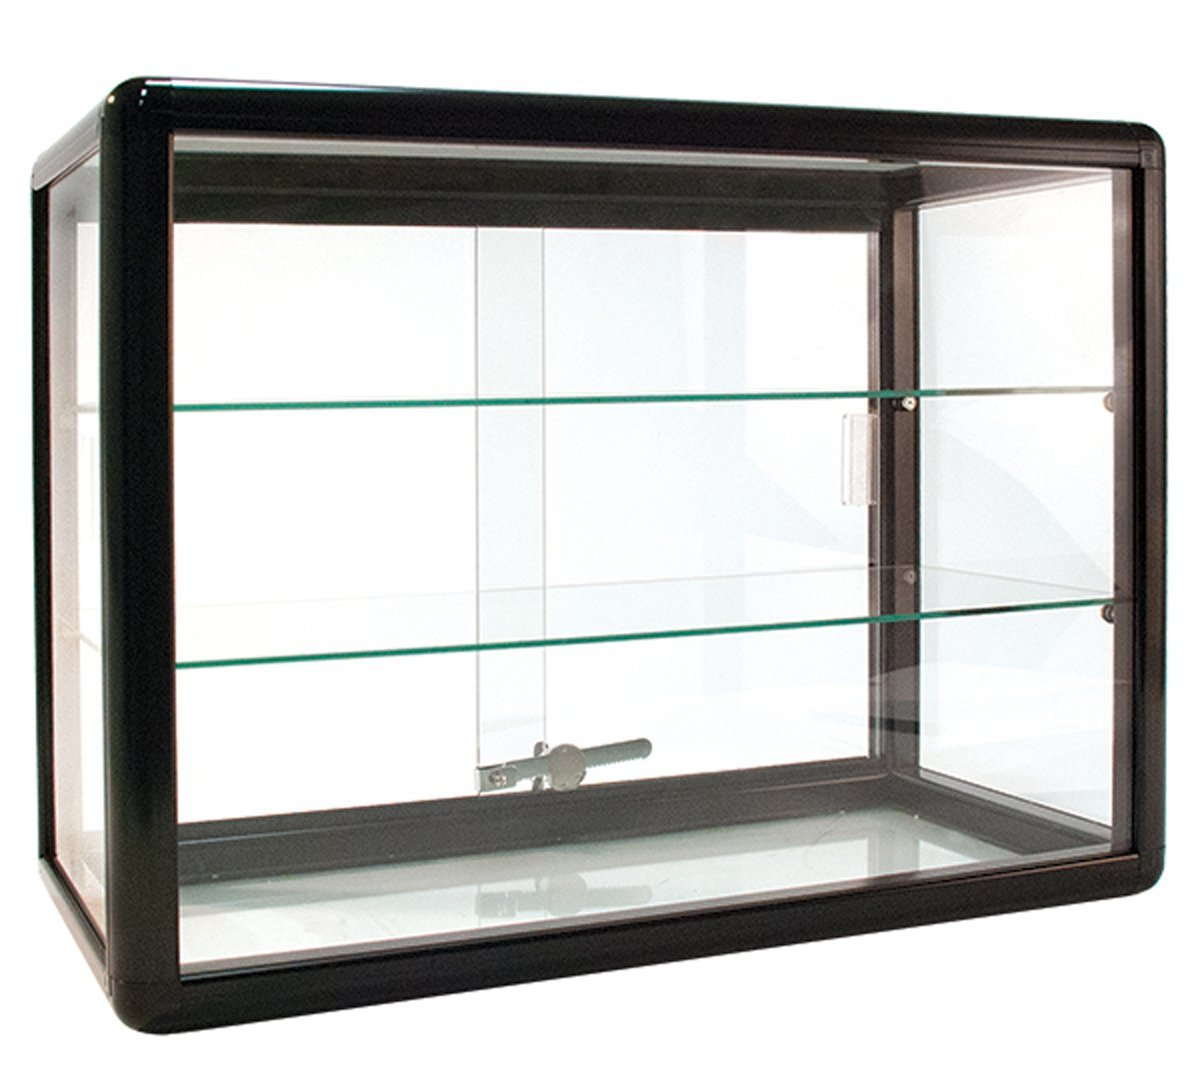 "Countertop Glass Showcase Retail Store Merchandise Display 24""Wx12""Dx18""H NEW"